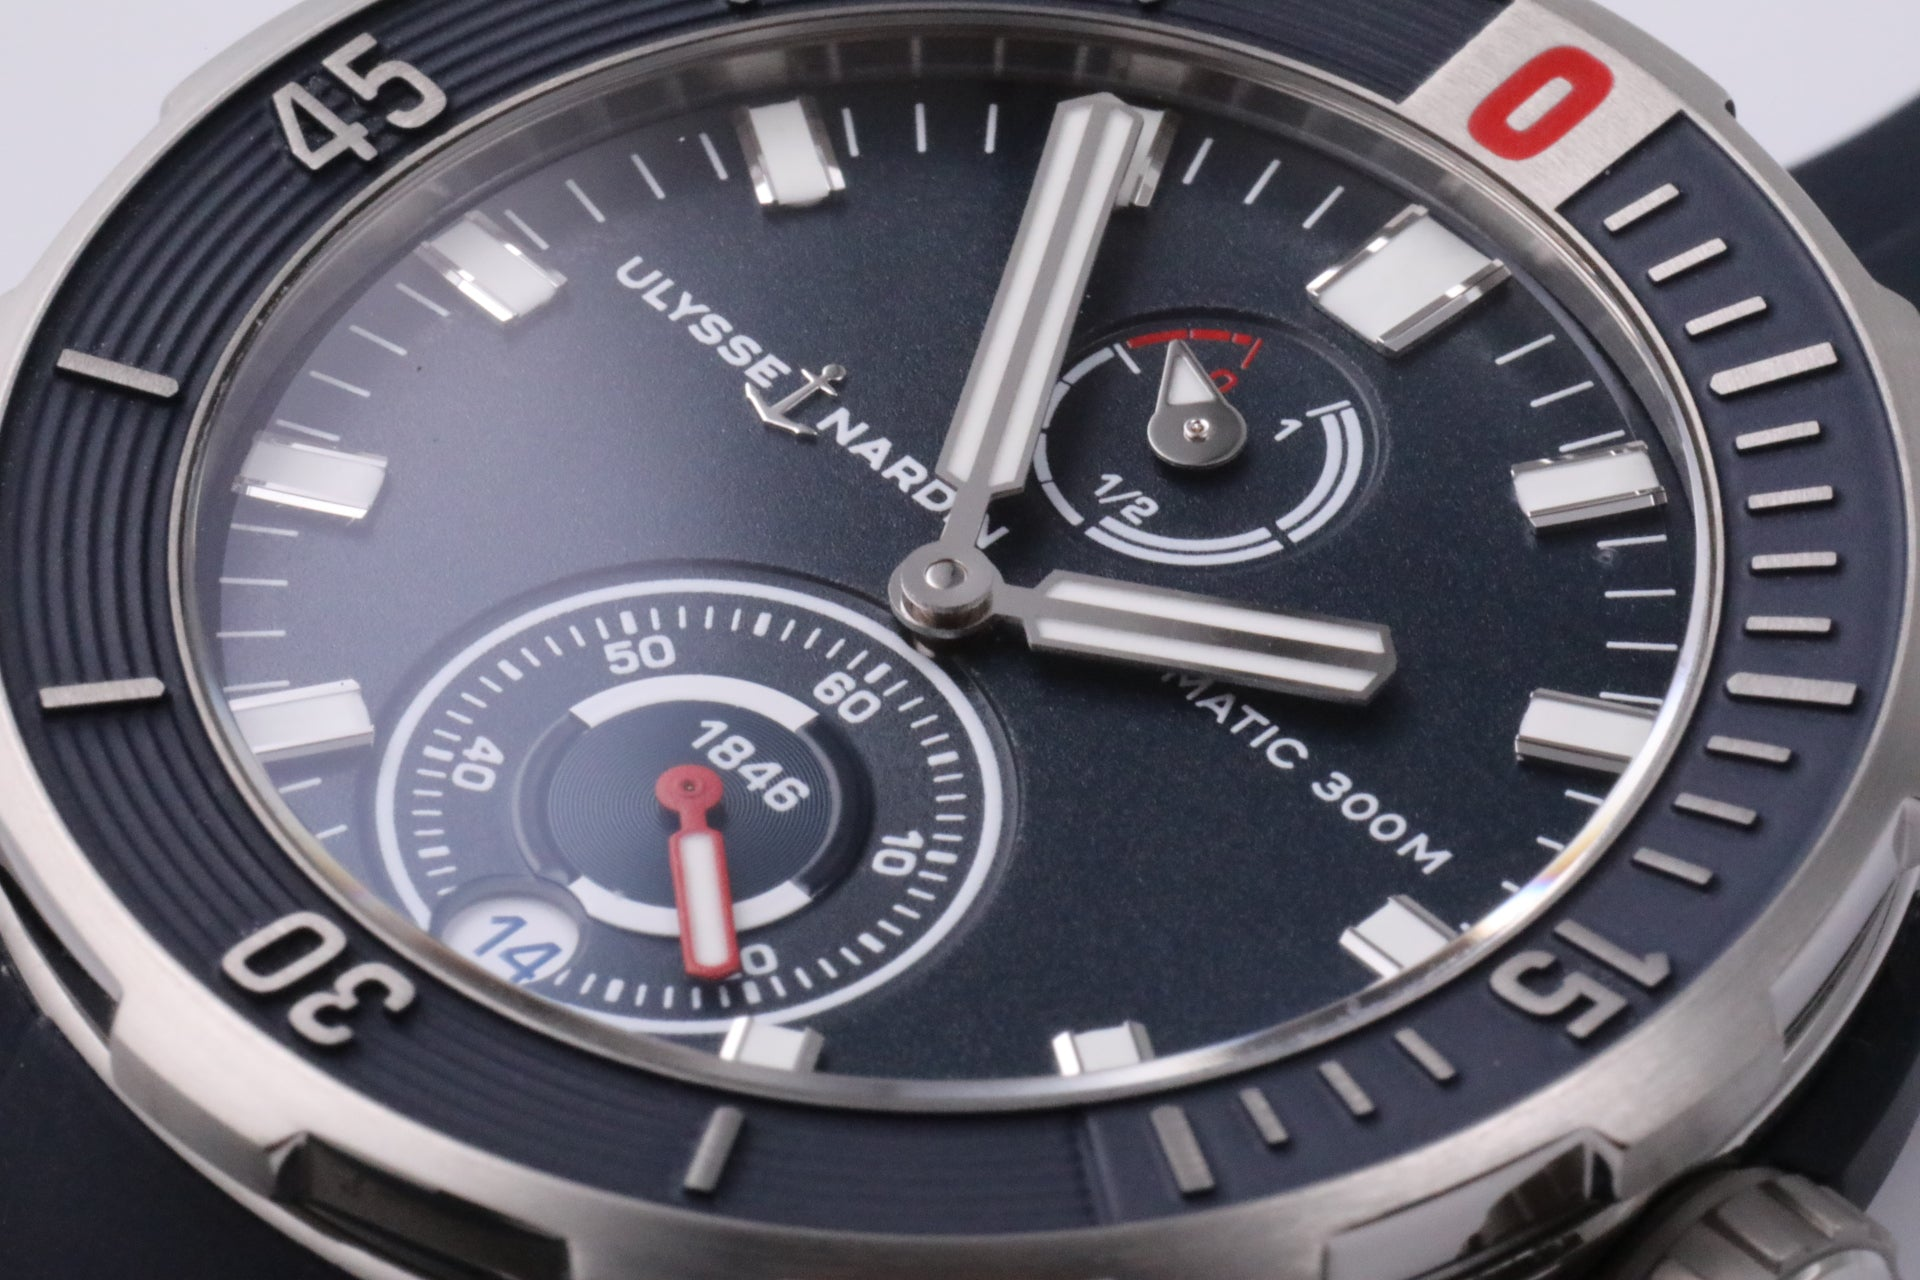 Ulysse Nardin Diver Chronometer 44mm blue dial